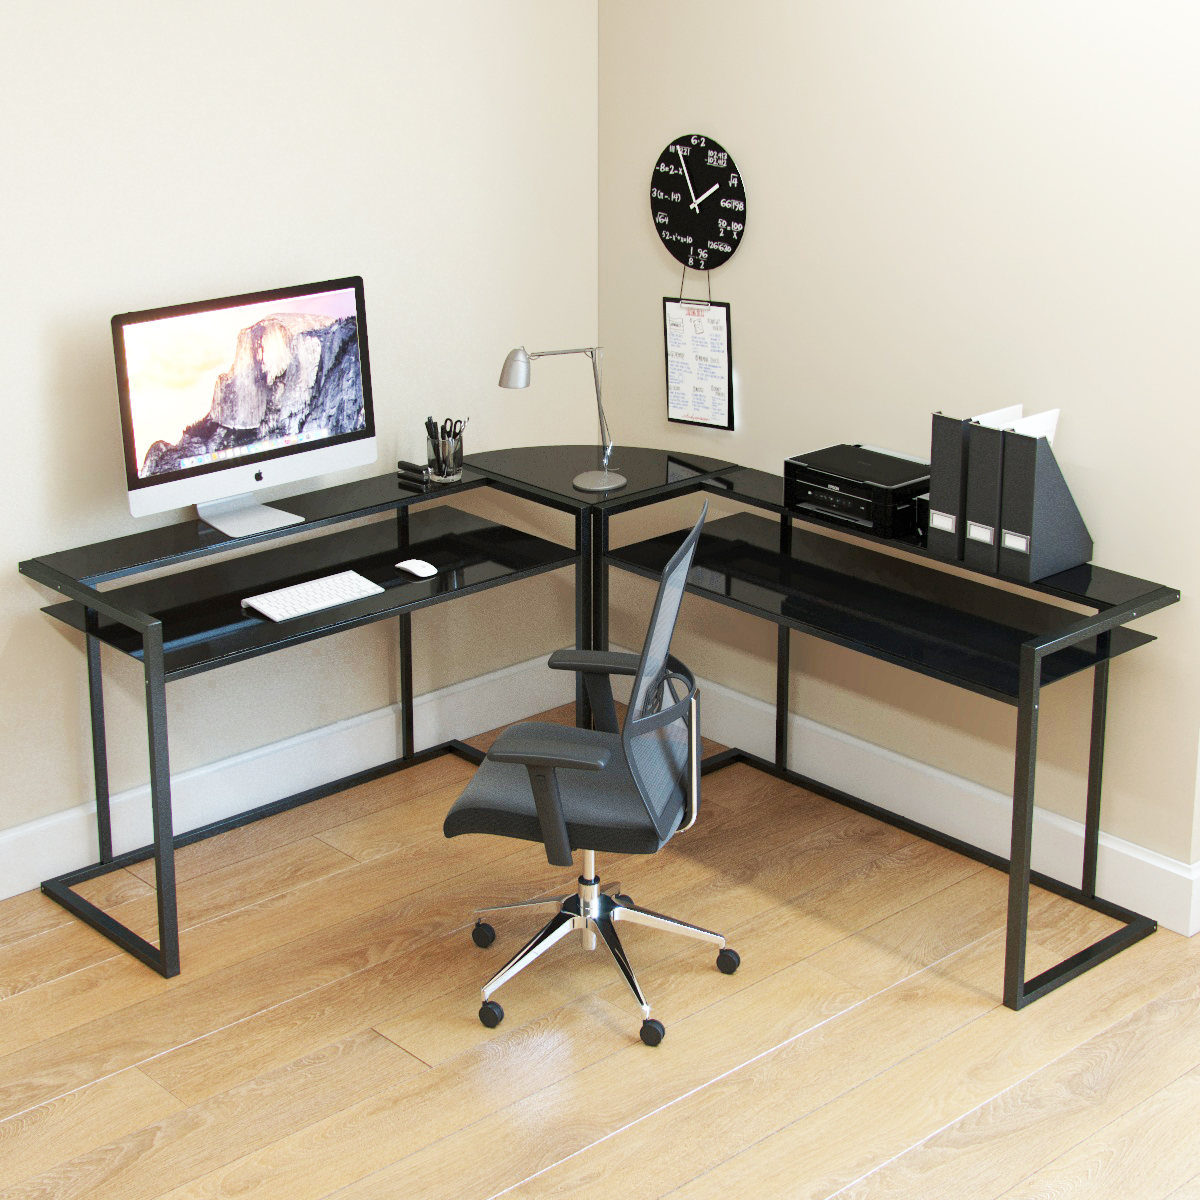 Ryan Rove Belmac 3 Piece L Shaped Computer Desk - Home and Office Corner Organizer with Side Table and Keyboard Tray - Laptop, M